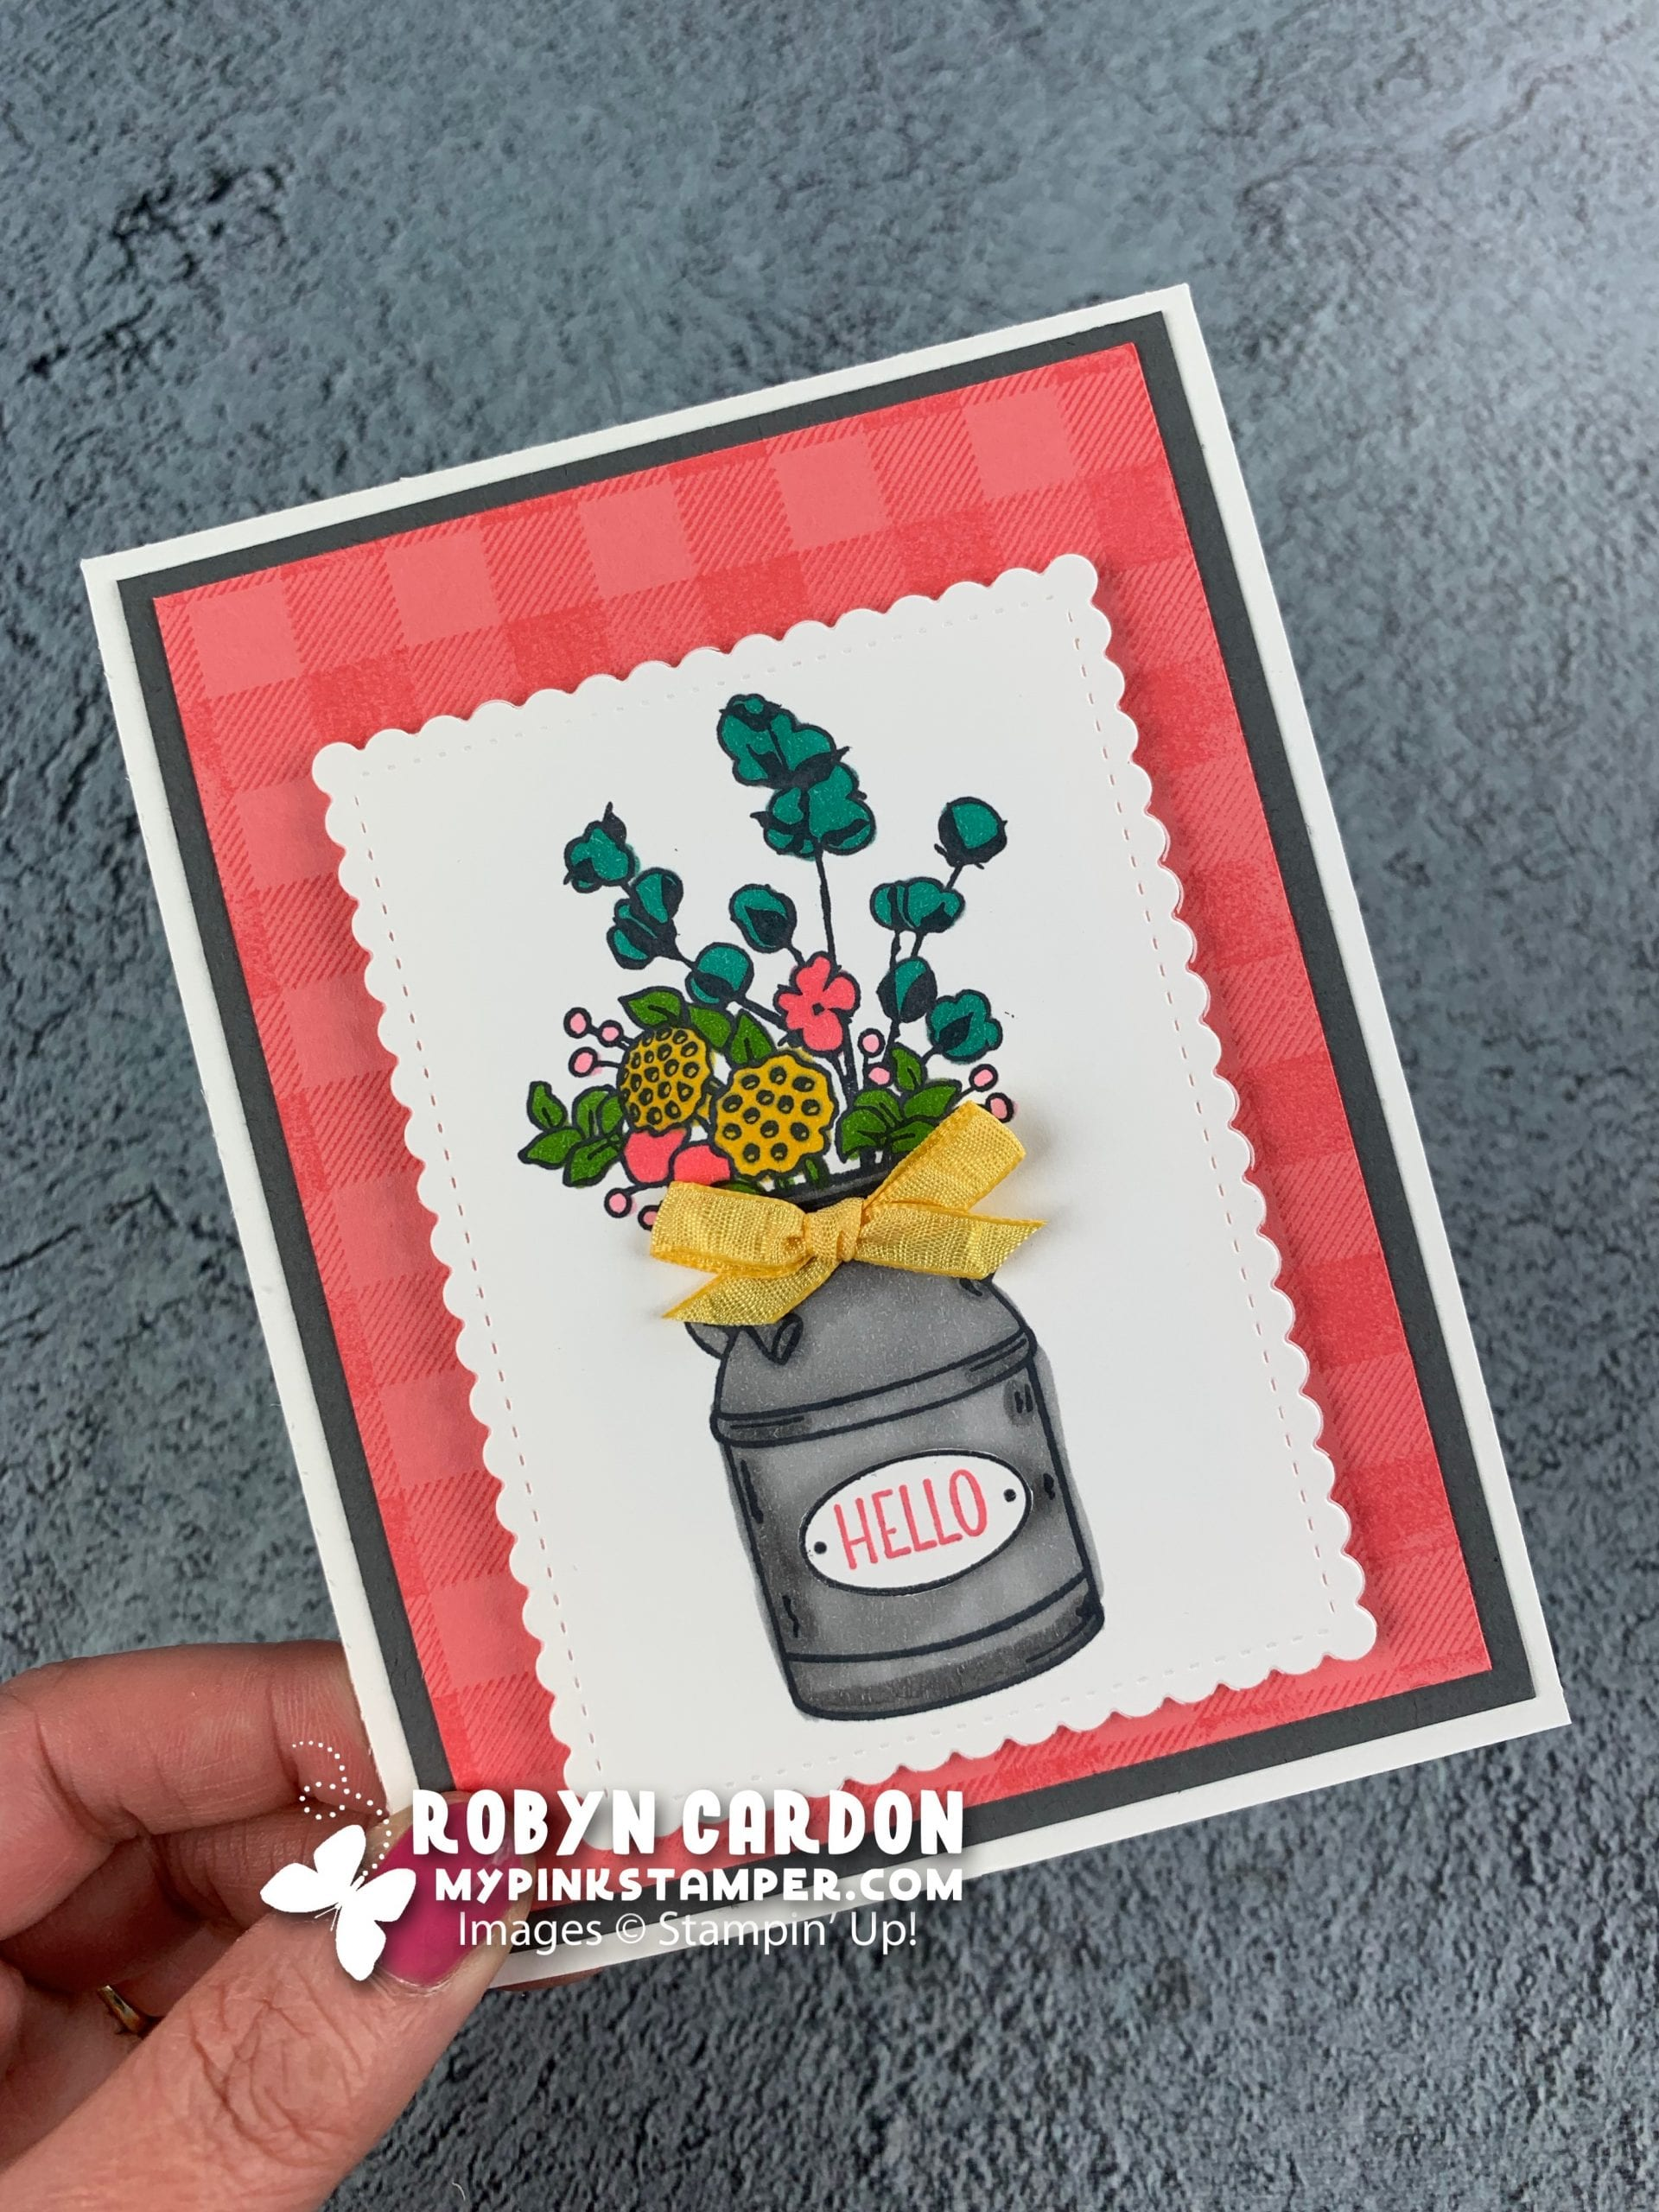 {VIDEO}Day 11 – A Card a Day in May – Stampin' Up! Country Home Tutorial & Week 2 Promotion!